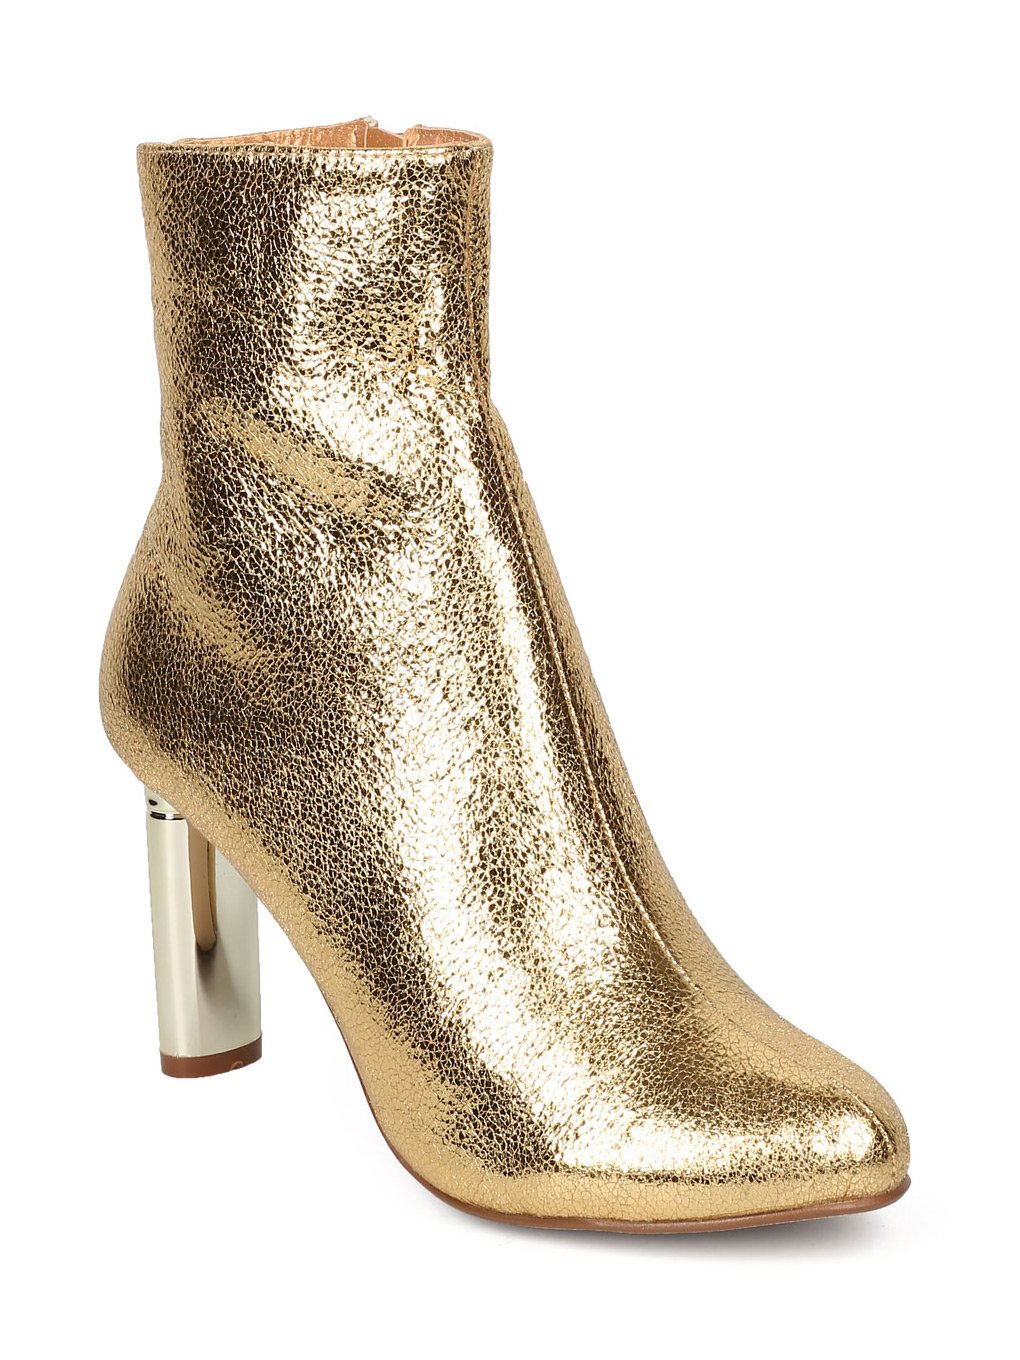 CAPE ROBBIN Women Metallic Leatherette Foiled Metallic Heel Bootie GF77 - Gold (Size: 10)